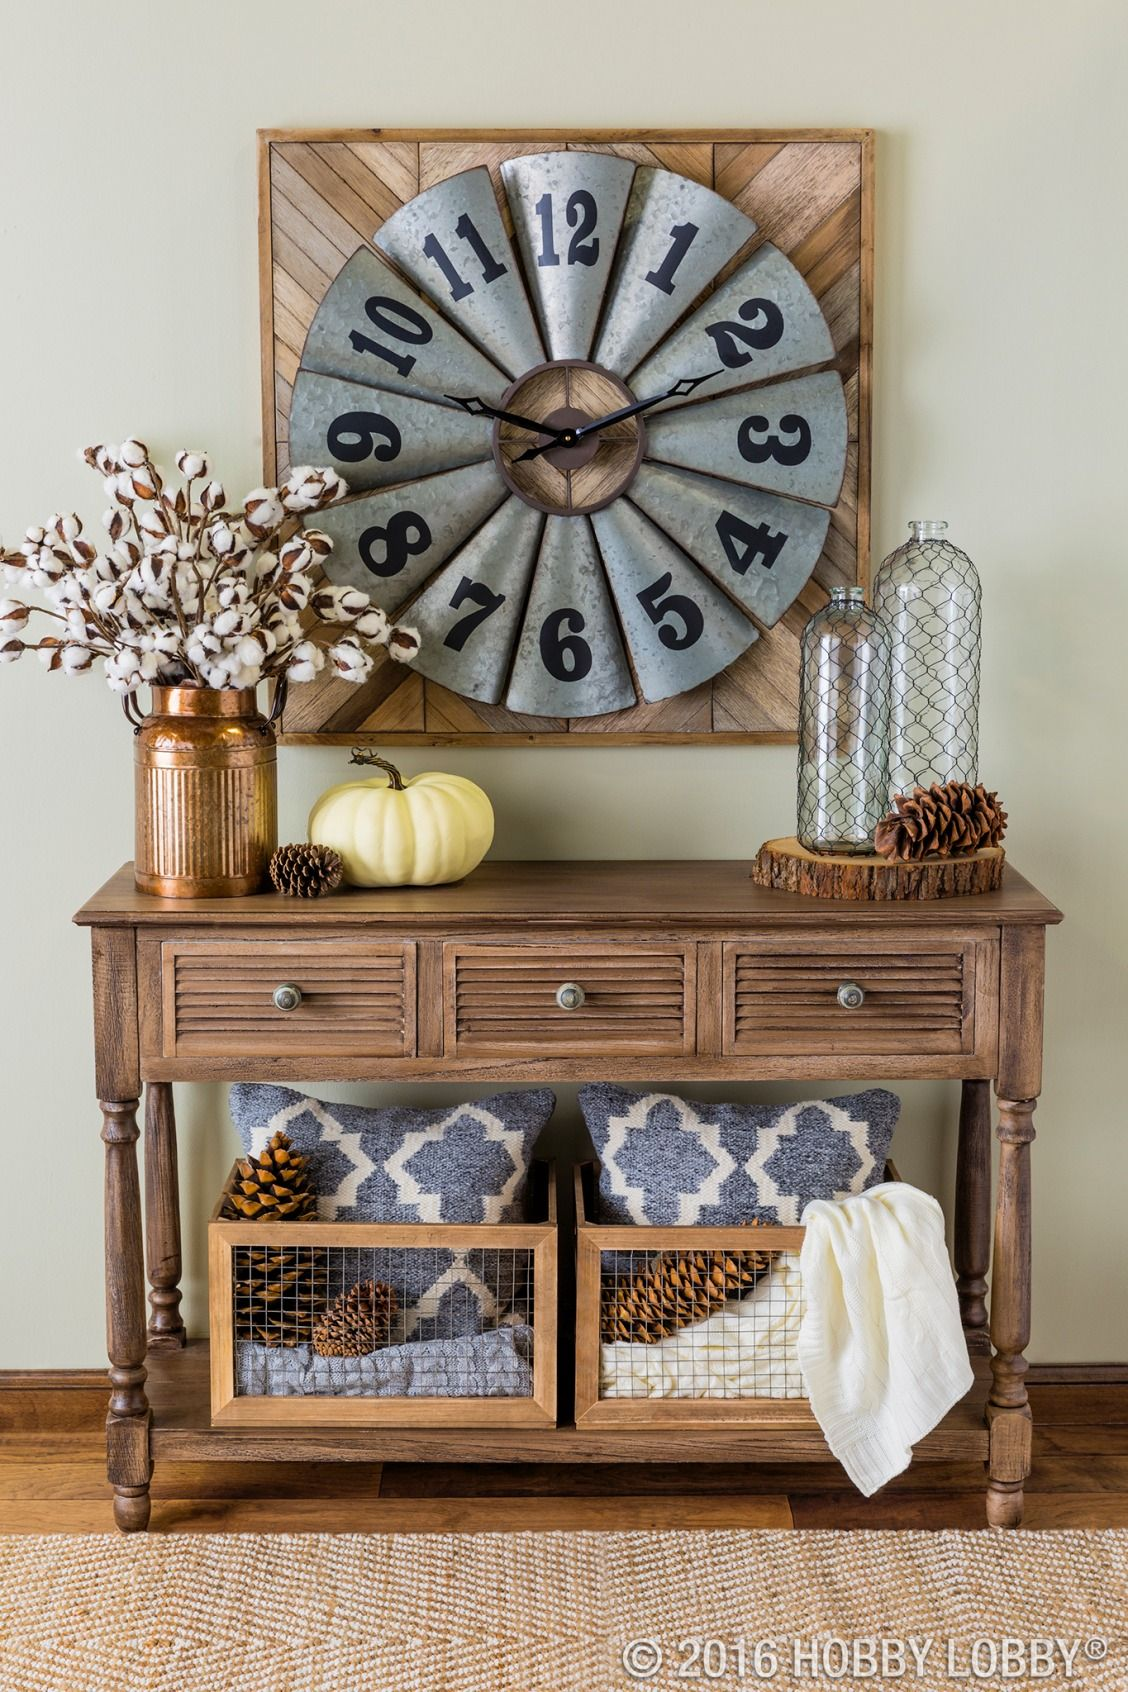 Is it time for an entryway redo? Couple industrial and farmhouse elements for an elegant, earthy feel.